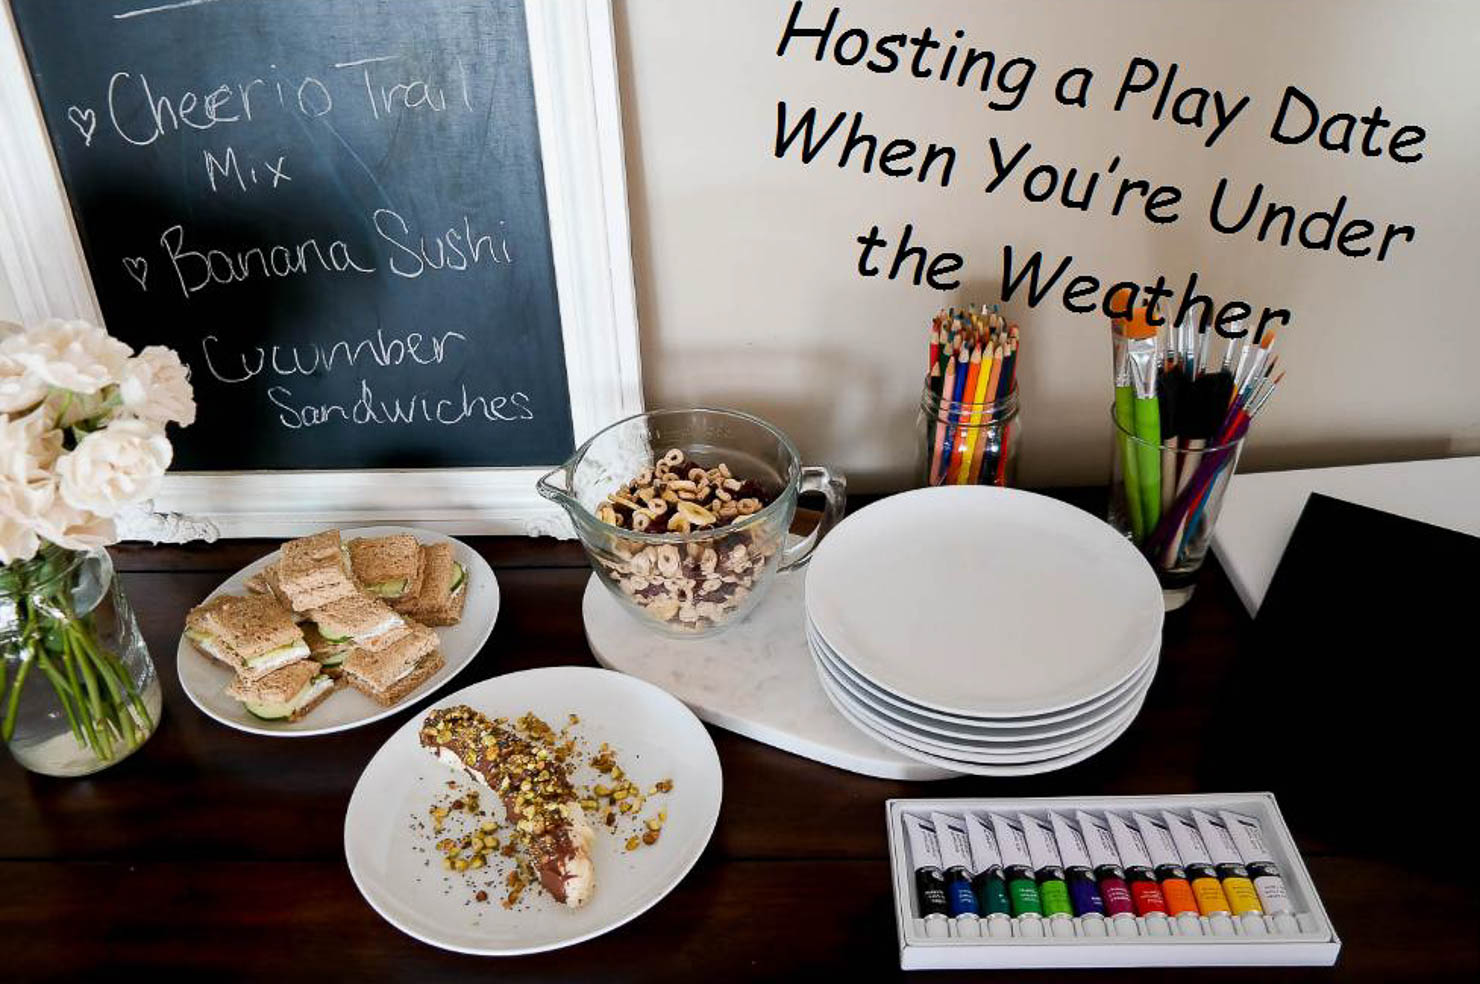 Back to School Party hosting a play date when your under the weather pfizer art party for kids healthy snacks for kids immune boosting smoothie